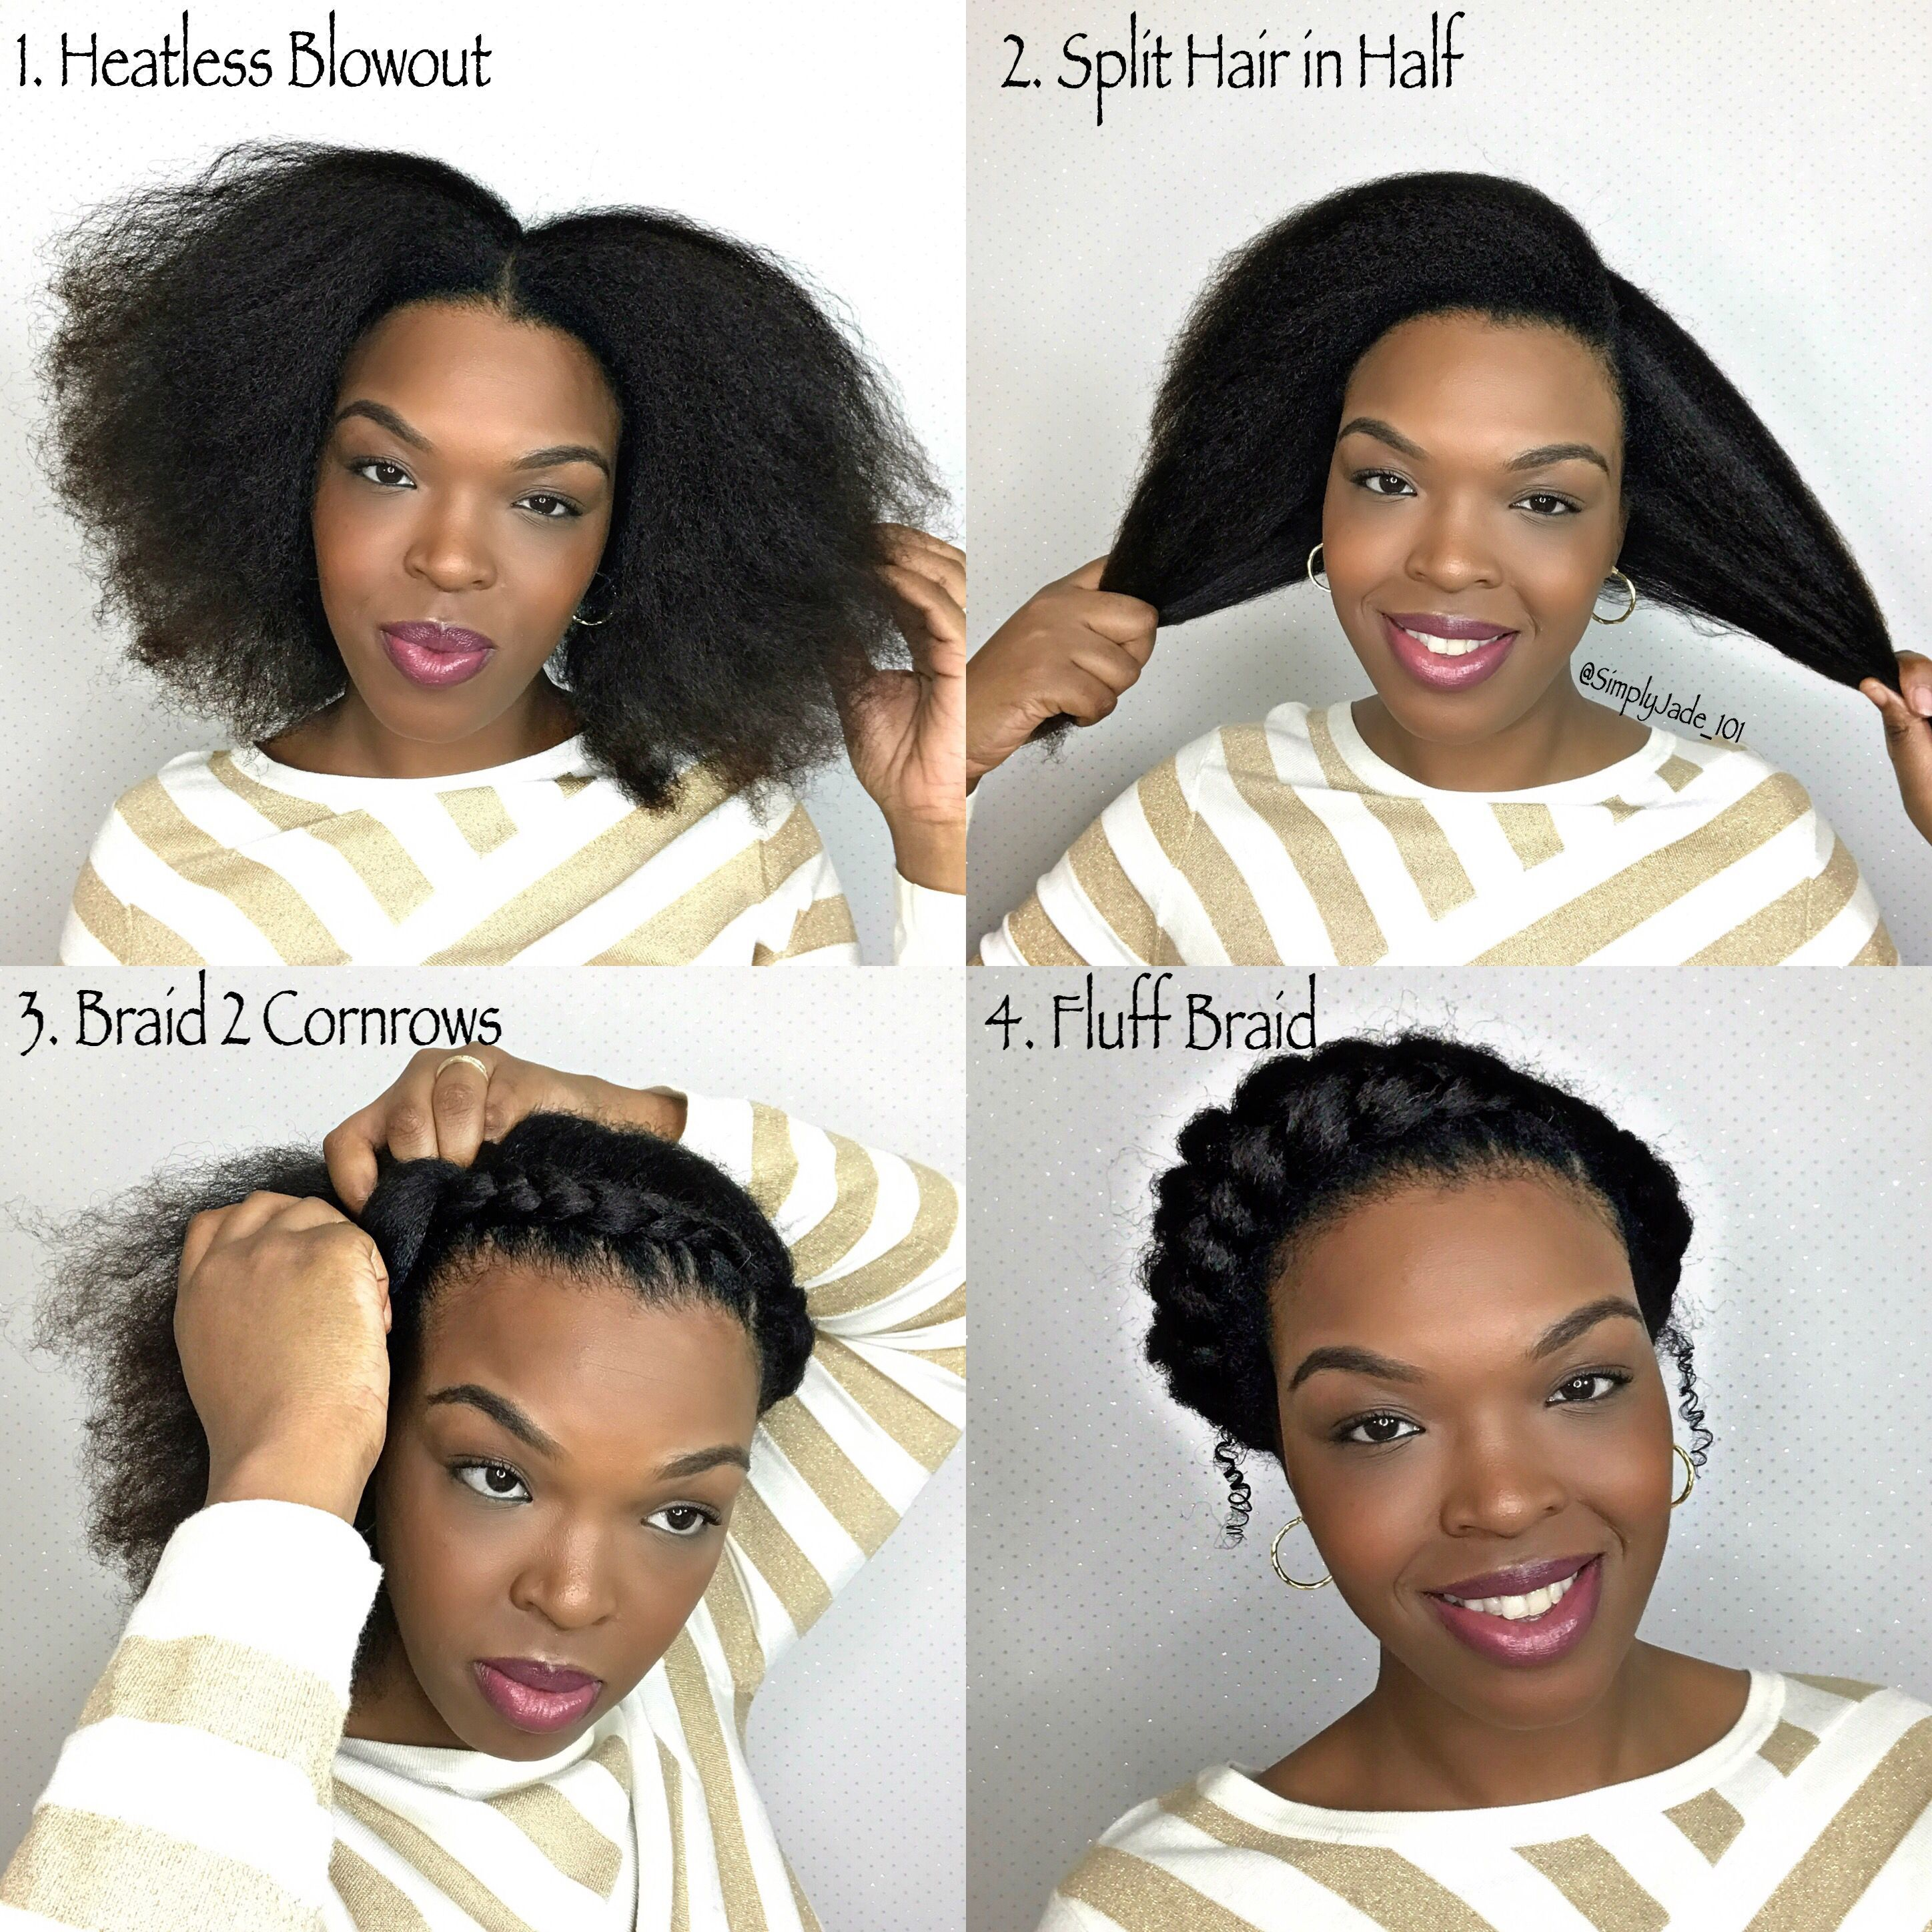 How To Goddess Braid Protective Style Step By Step Tutorial Youtube Com Simplyjade101 Short Natural Hair Styles Natural Hair Updo Natural Hair Styles